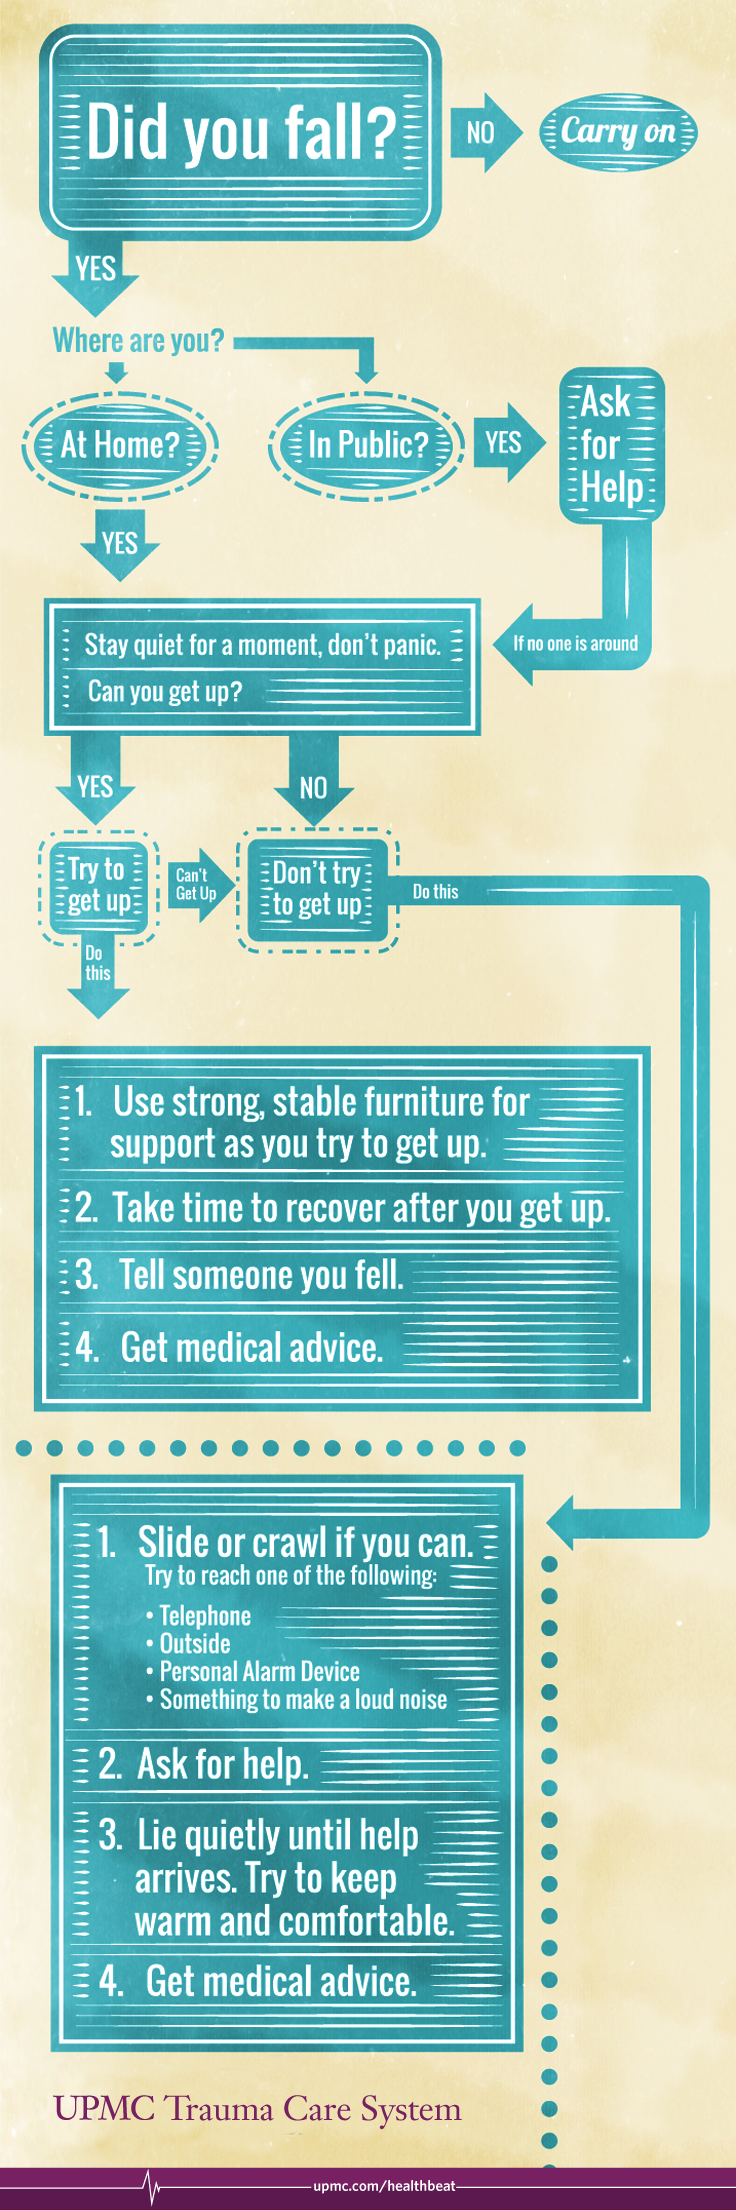 Tips on what you should do if you experience a fall.